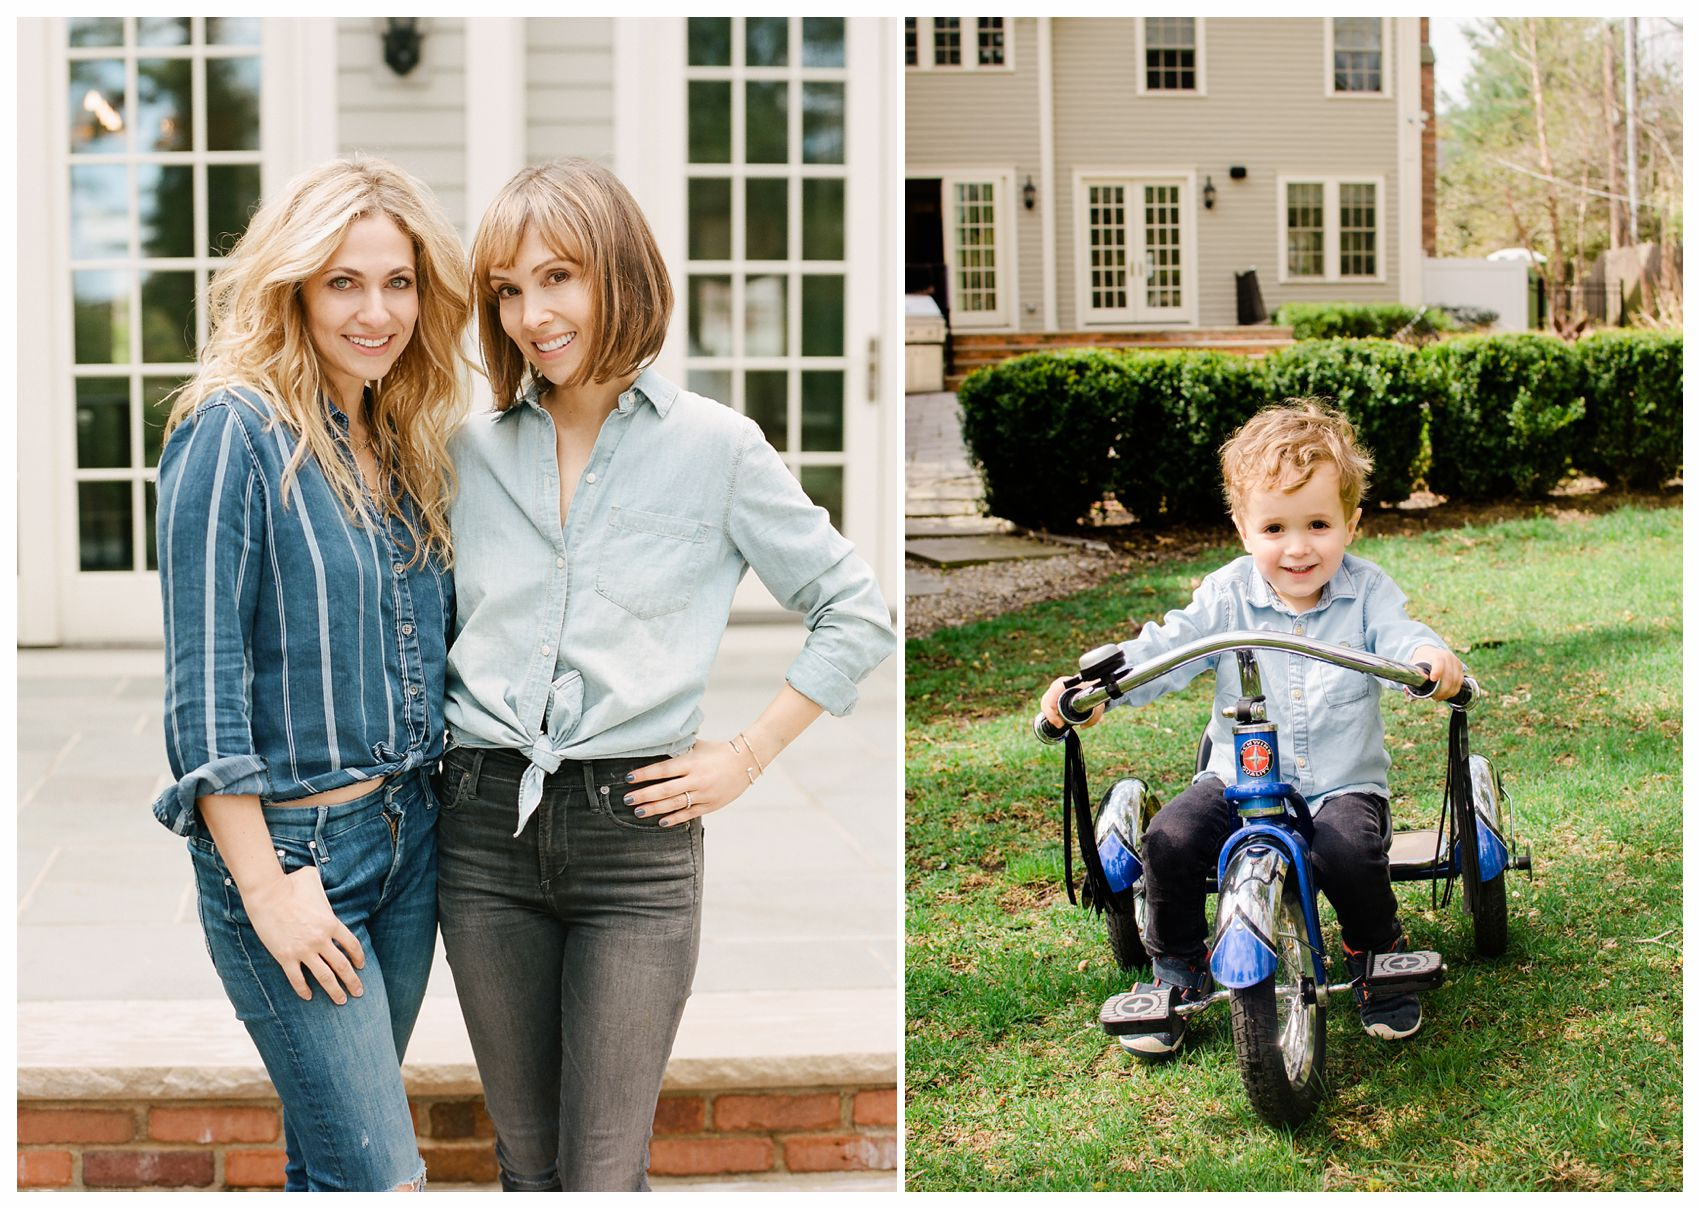 beautiful blond and brunette sisters with little boy on a tricycle posing for family portrait in NJ